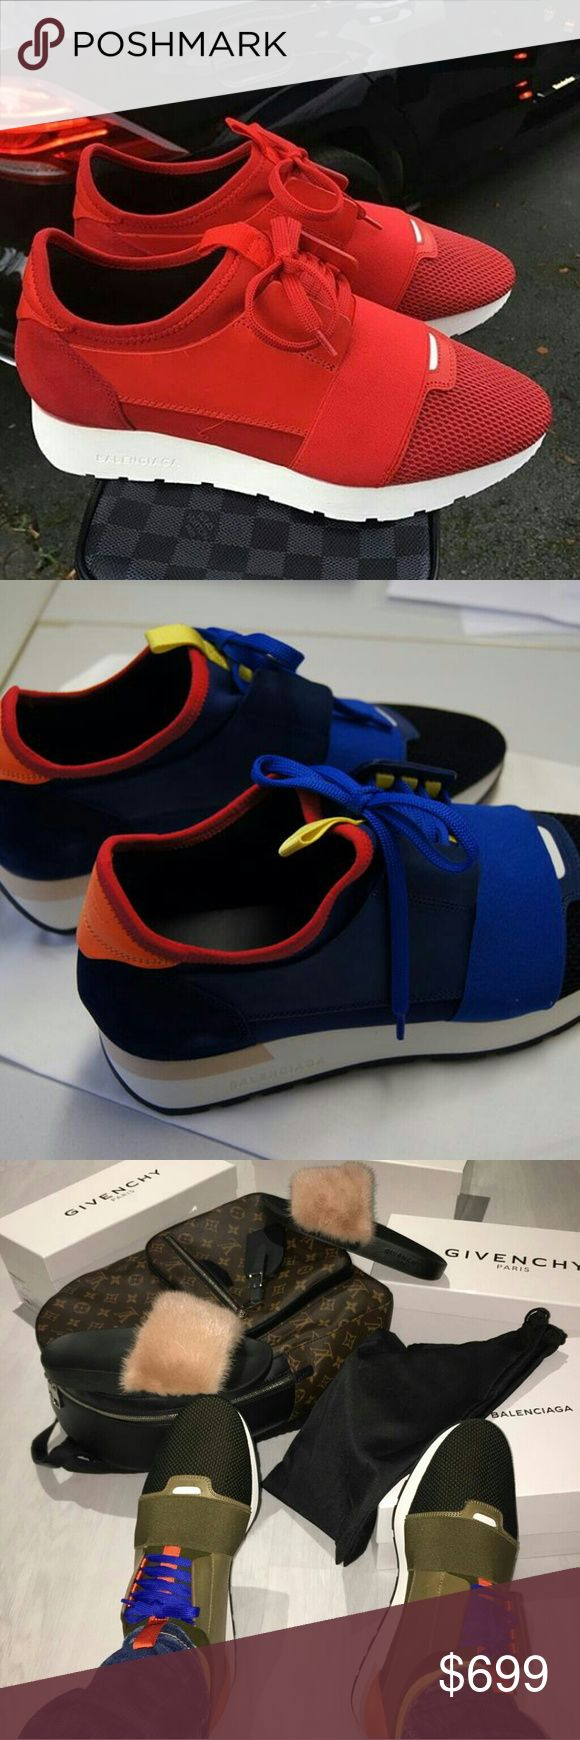 BalenciAga Sneakers Sale Sale Sale! Weekend Sale All New and Authentic Men or Women All sizes Available Contact me to get if for $575.00@ 8177790625 Balenciaga Shoes Sneakers